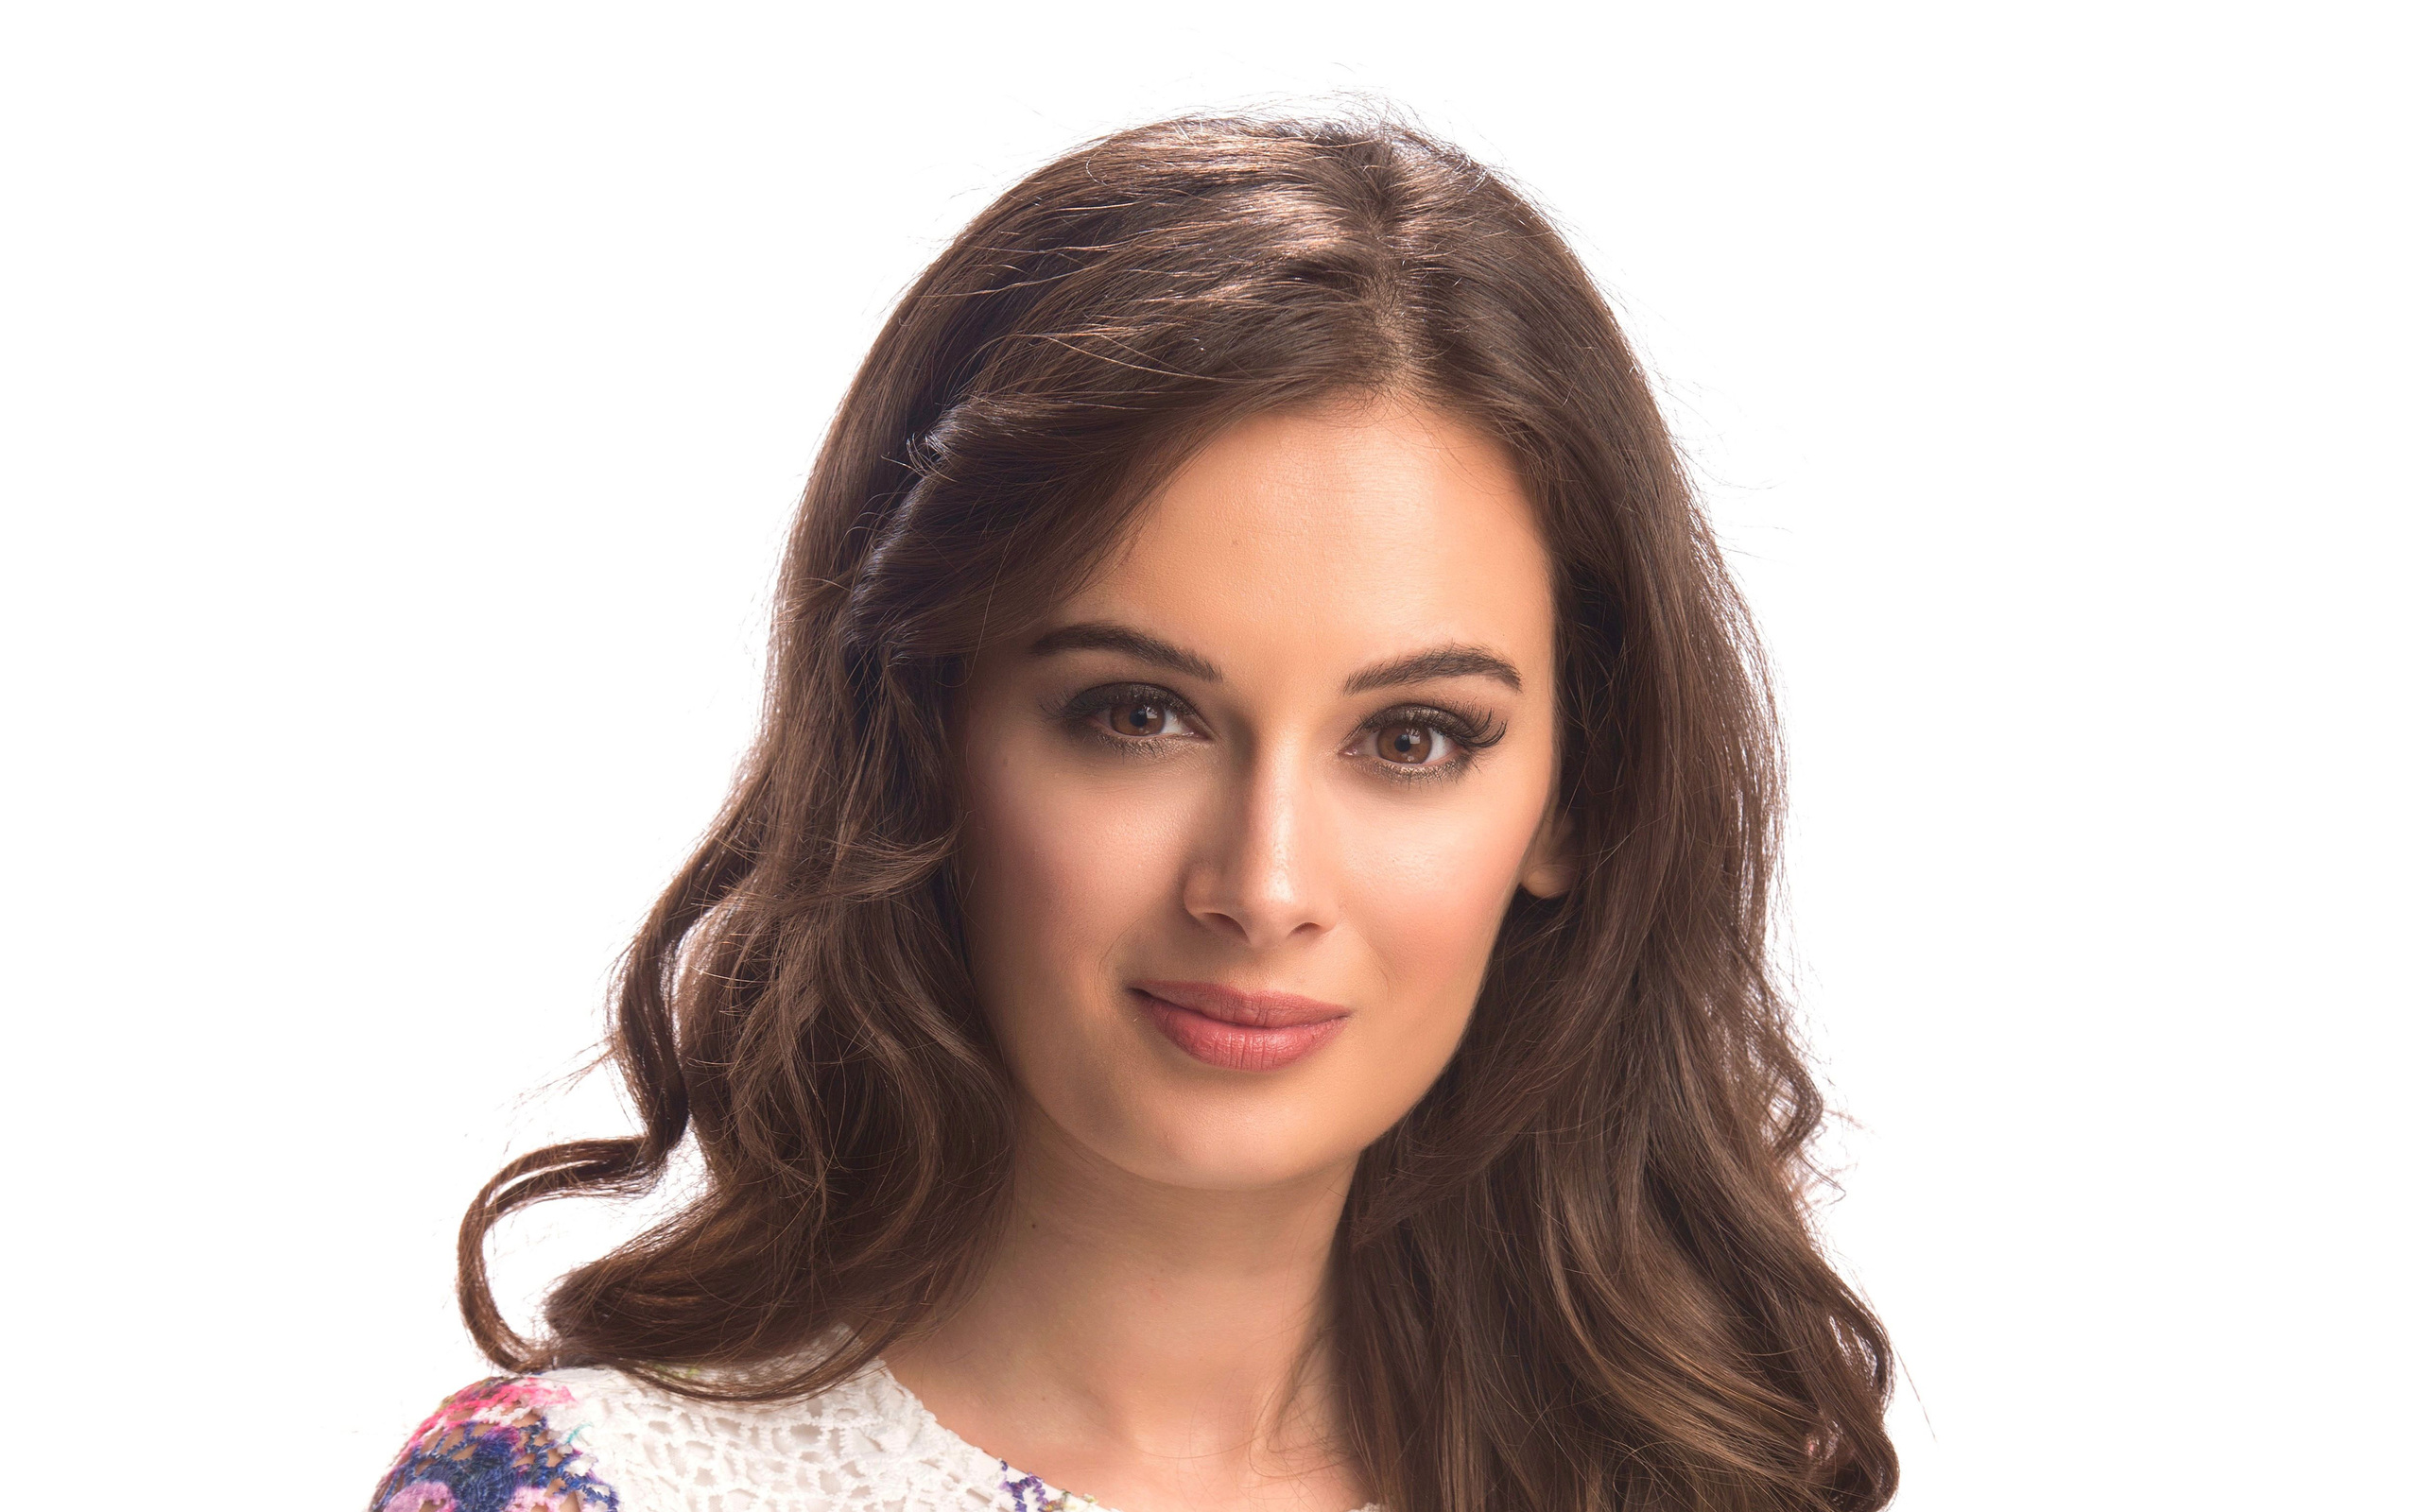 evelyn-sharma-4k-2016-sd.jpg